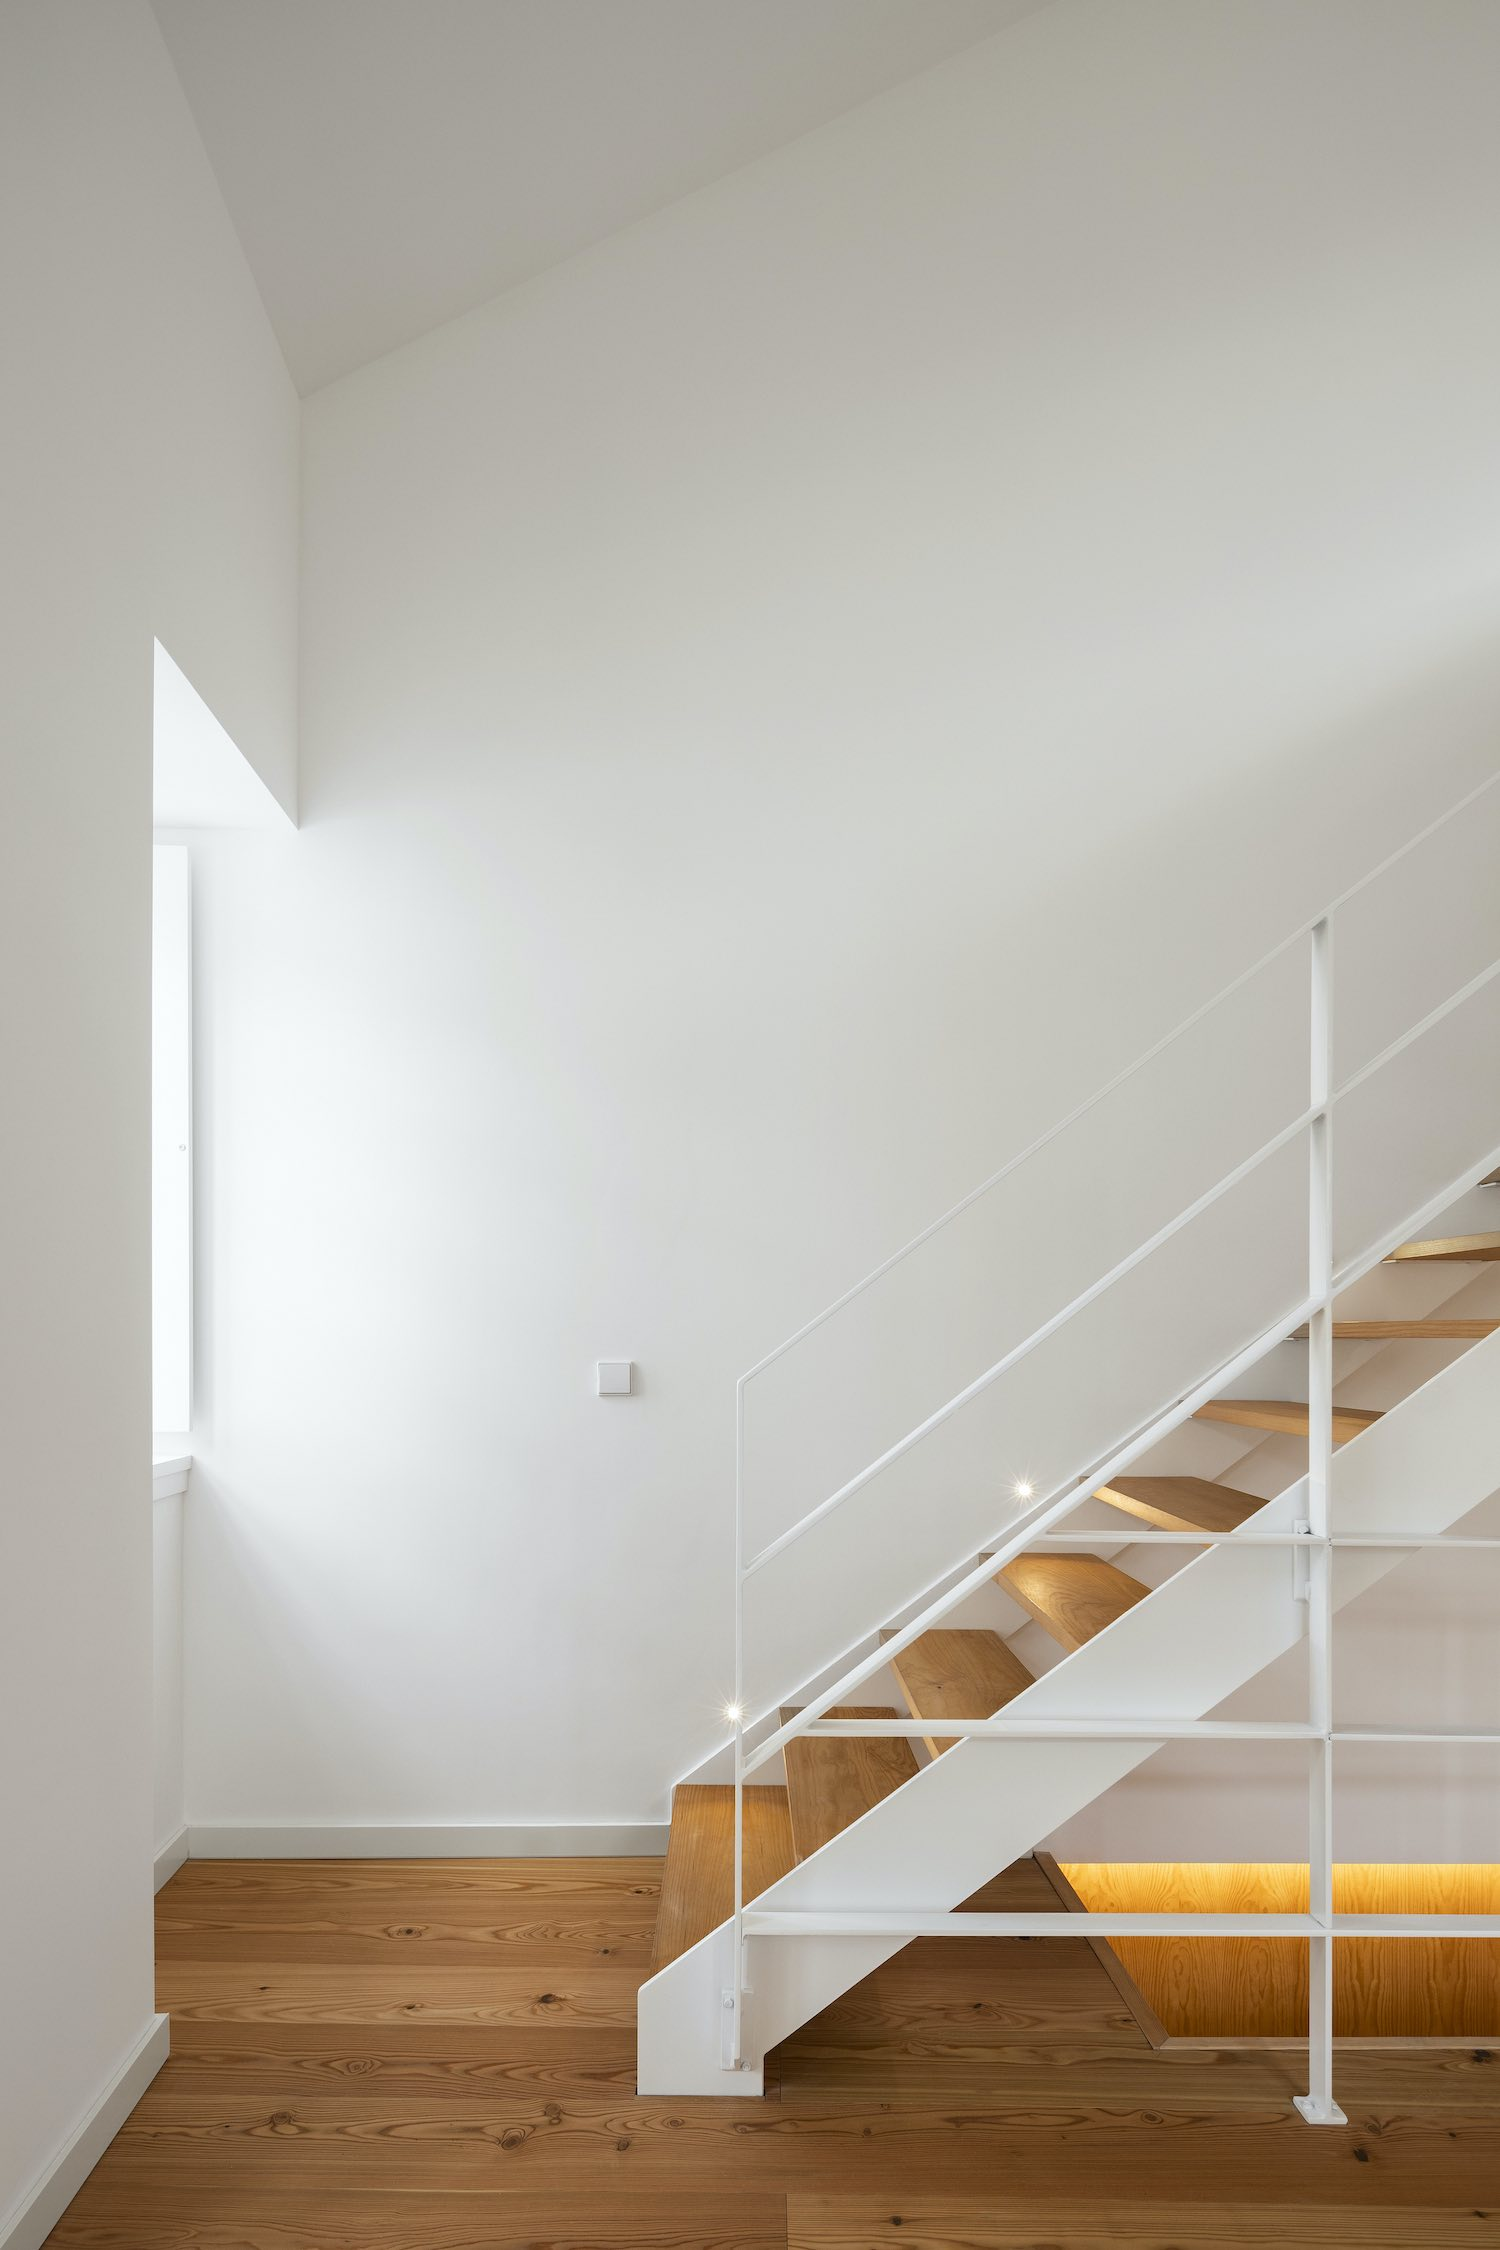 staircase with wooden steps and steel handrail